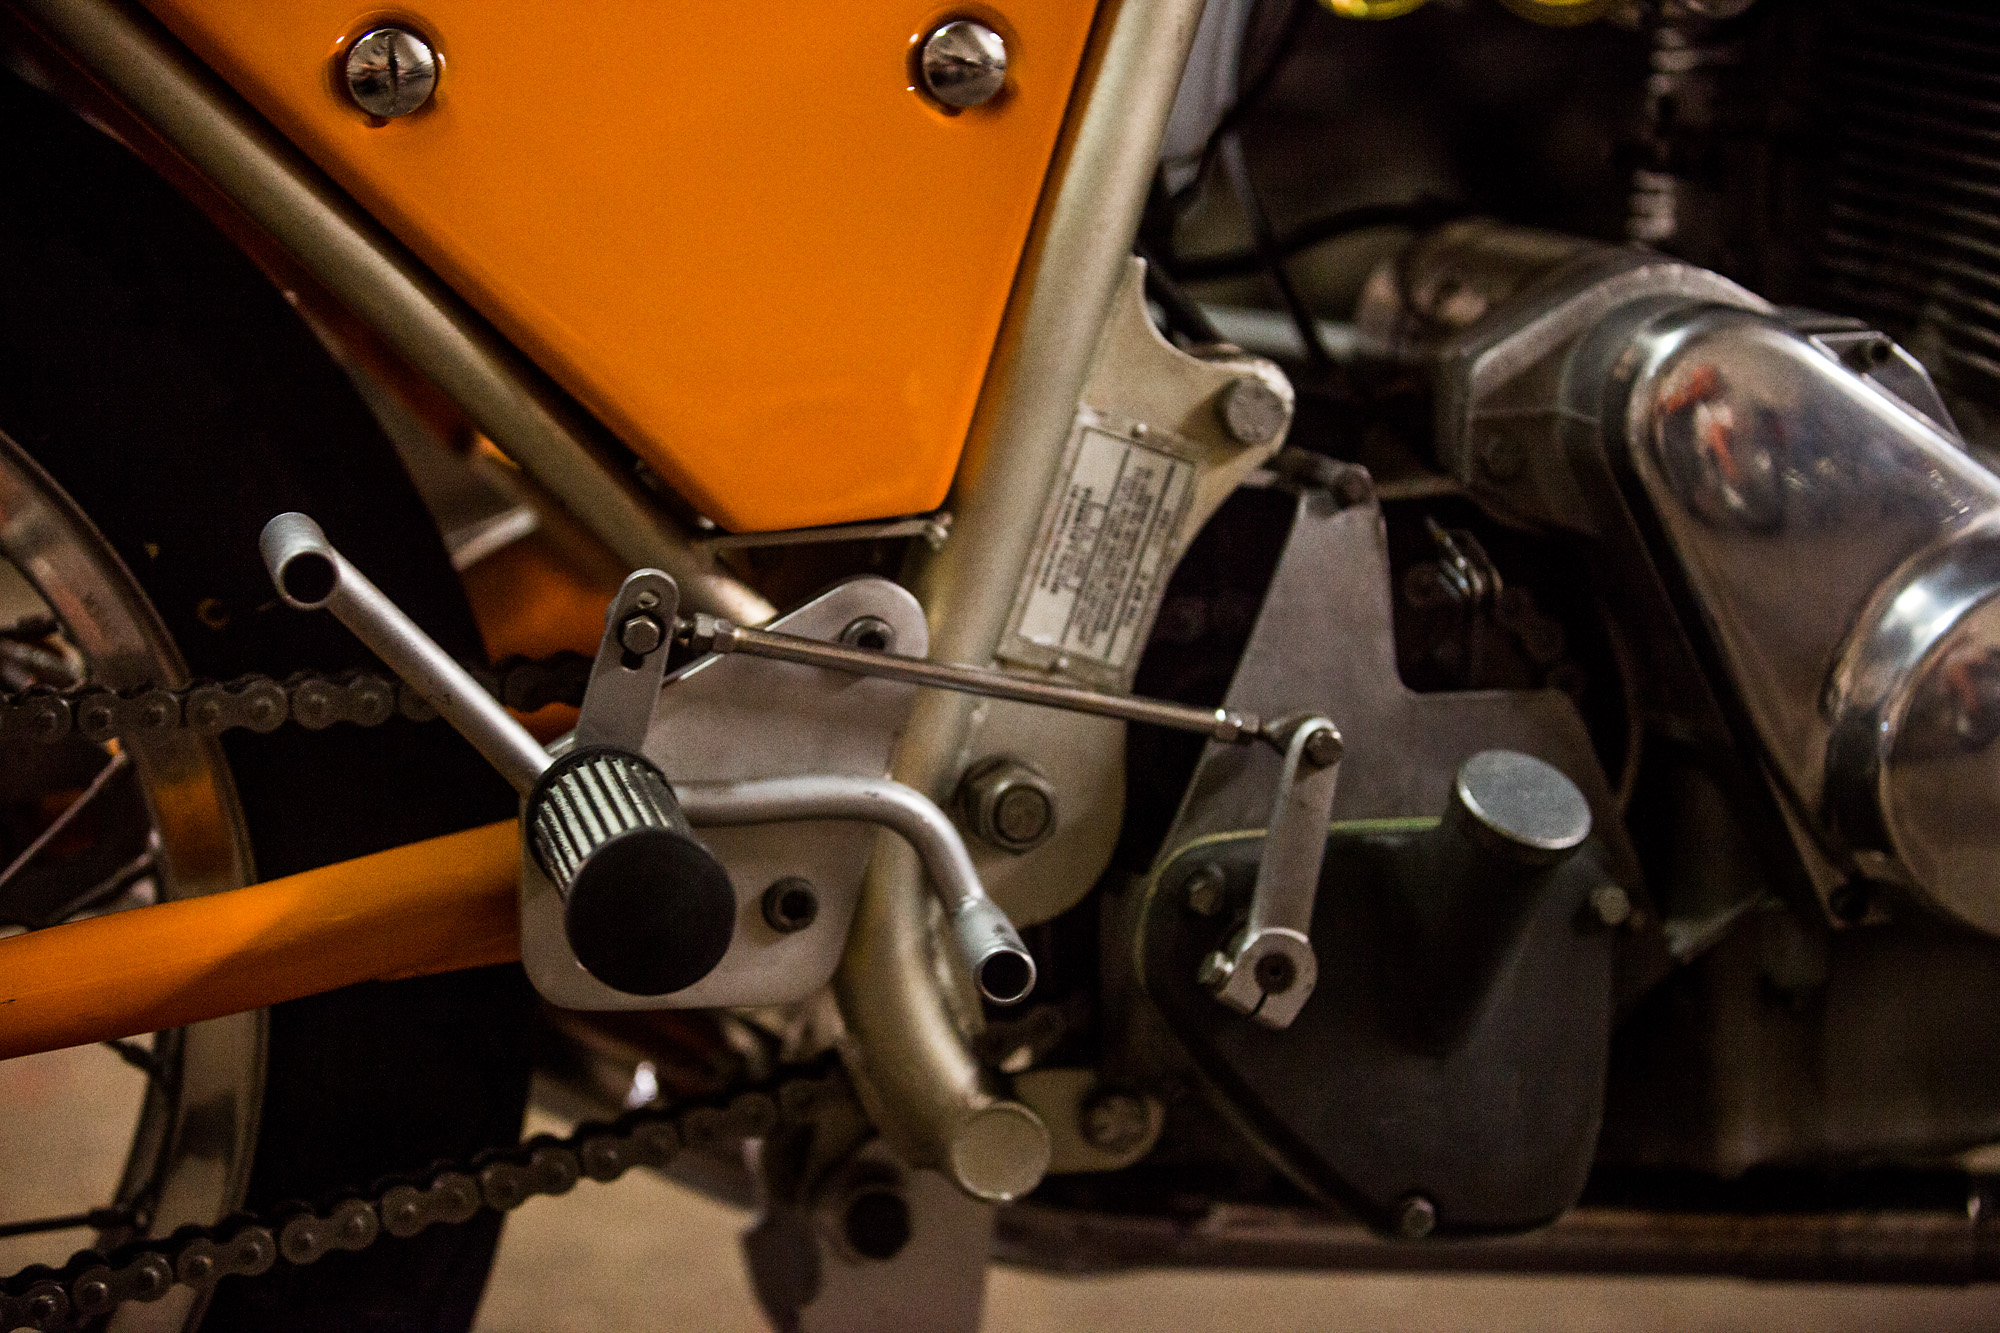 1974 Laverda SFC shifter